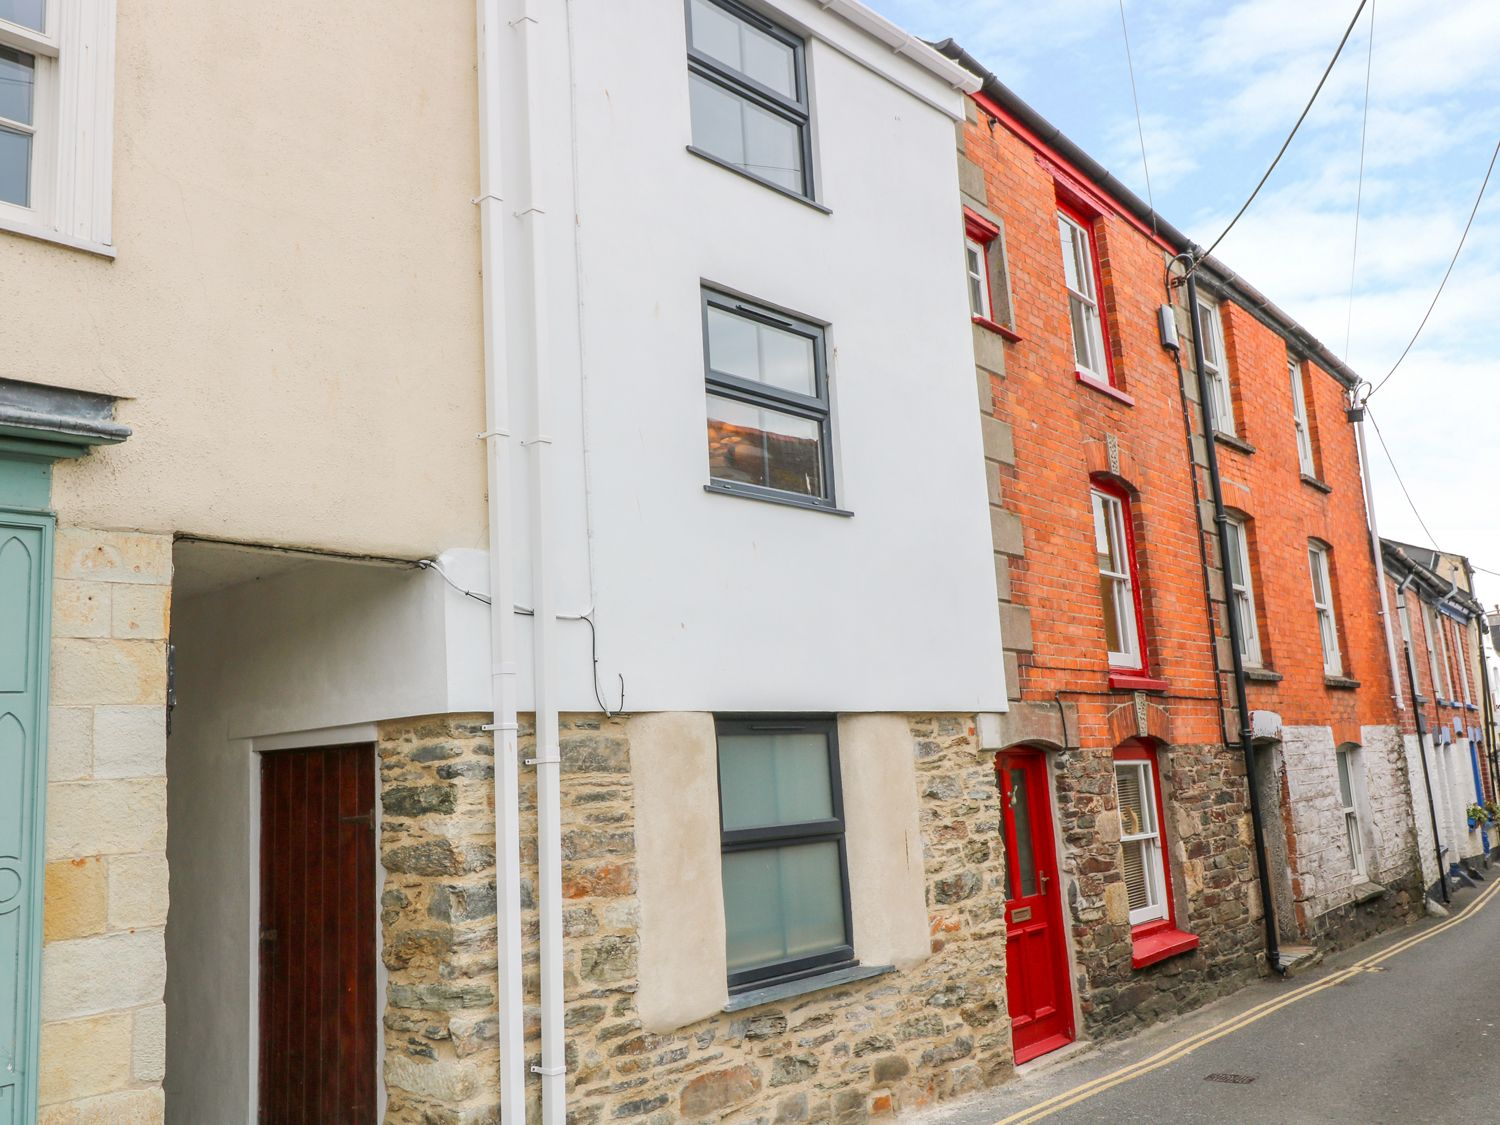 47 Church Street - Cornwall - 1001587 - photo 1